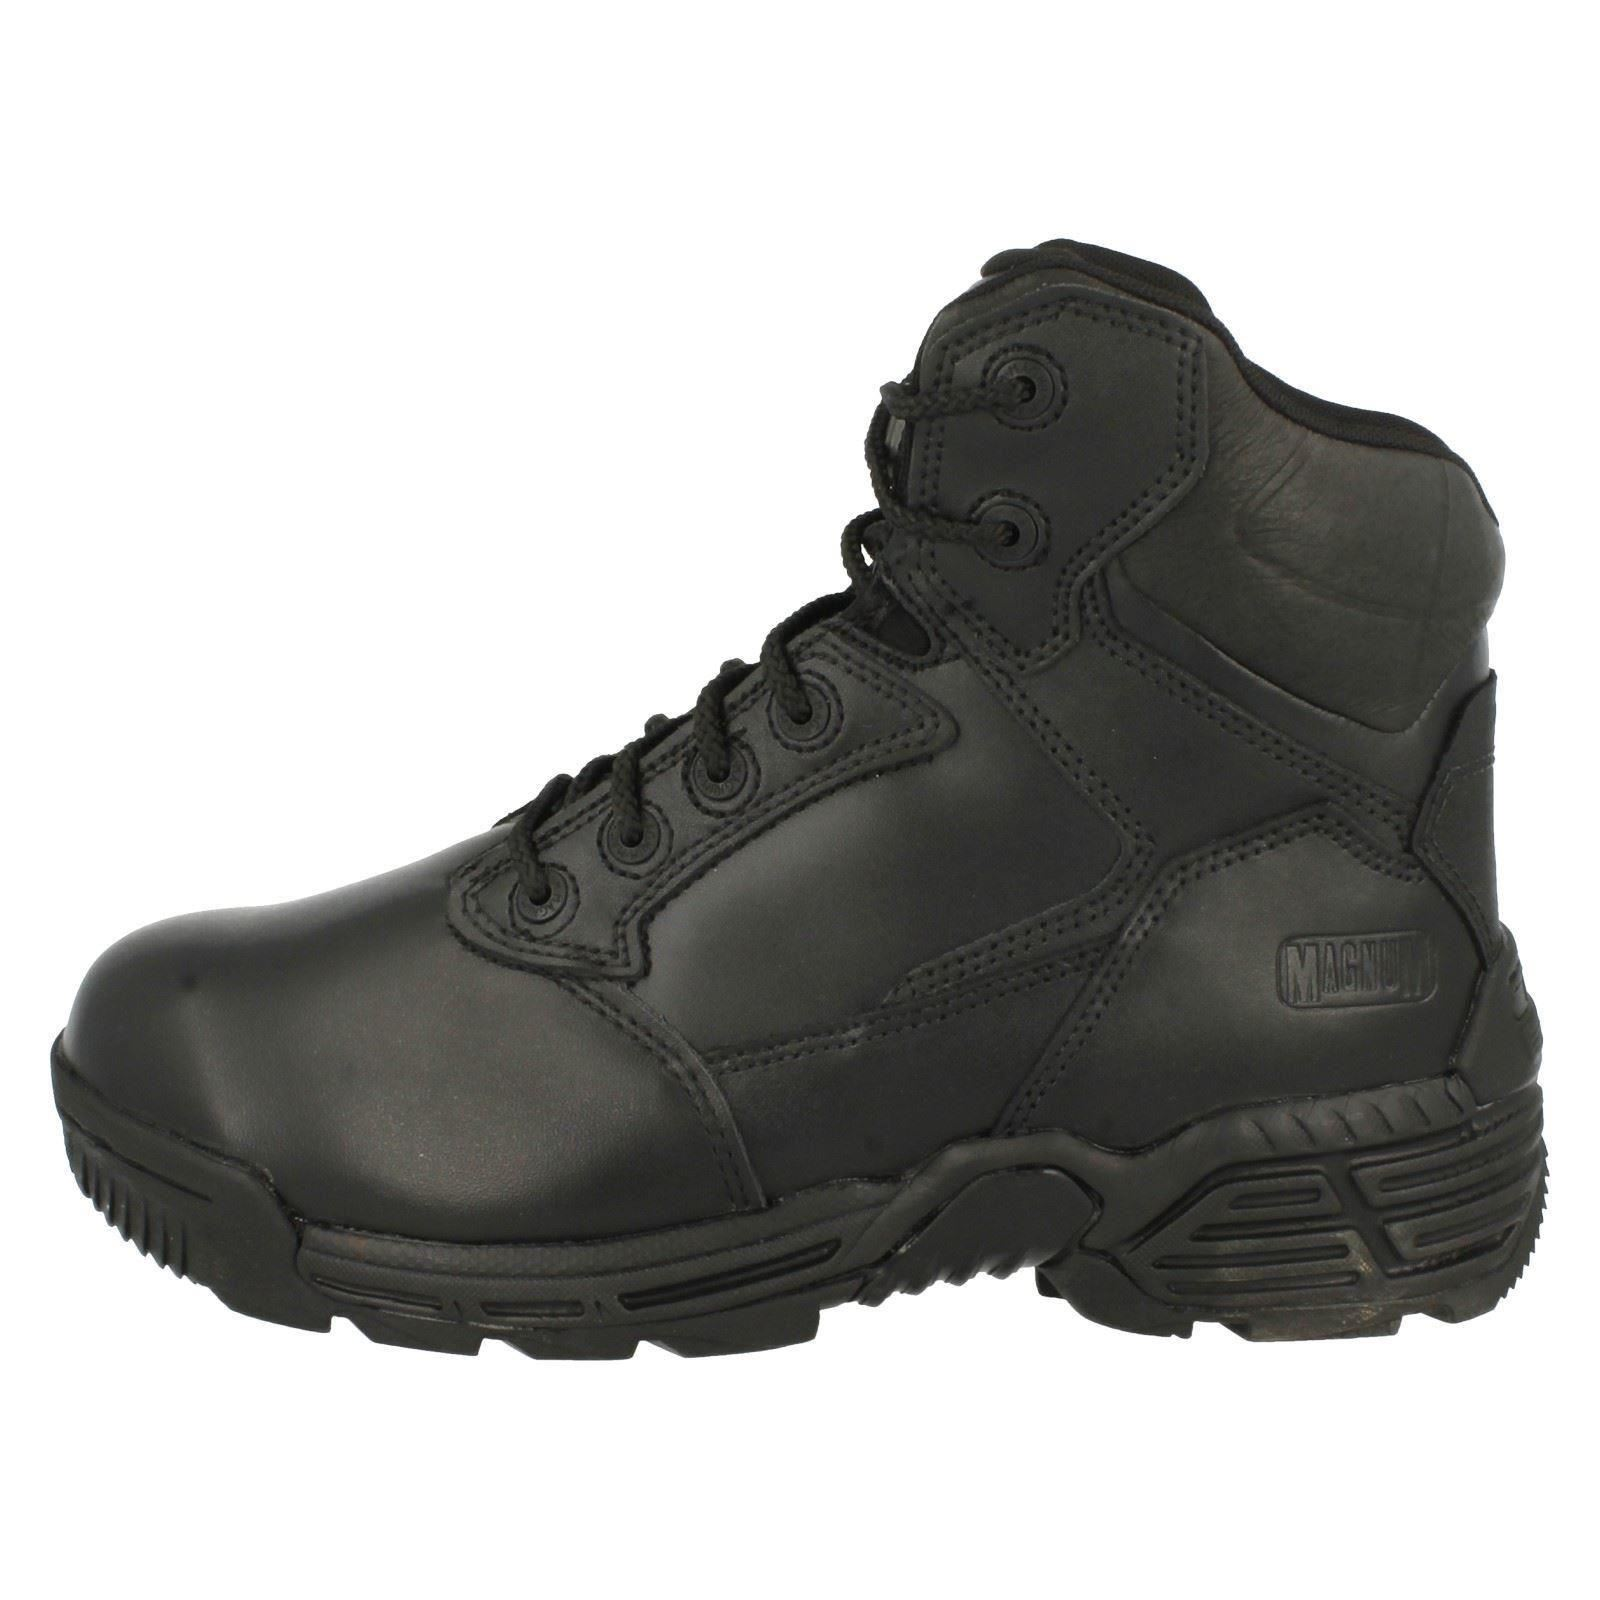 Herren 'Stealth Magnum Lace Up Work Stiefel 'Stealth Herren Force' 55a9a3